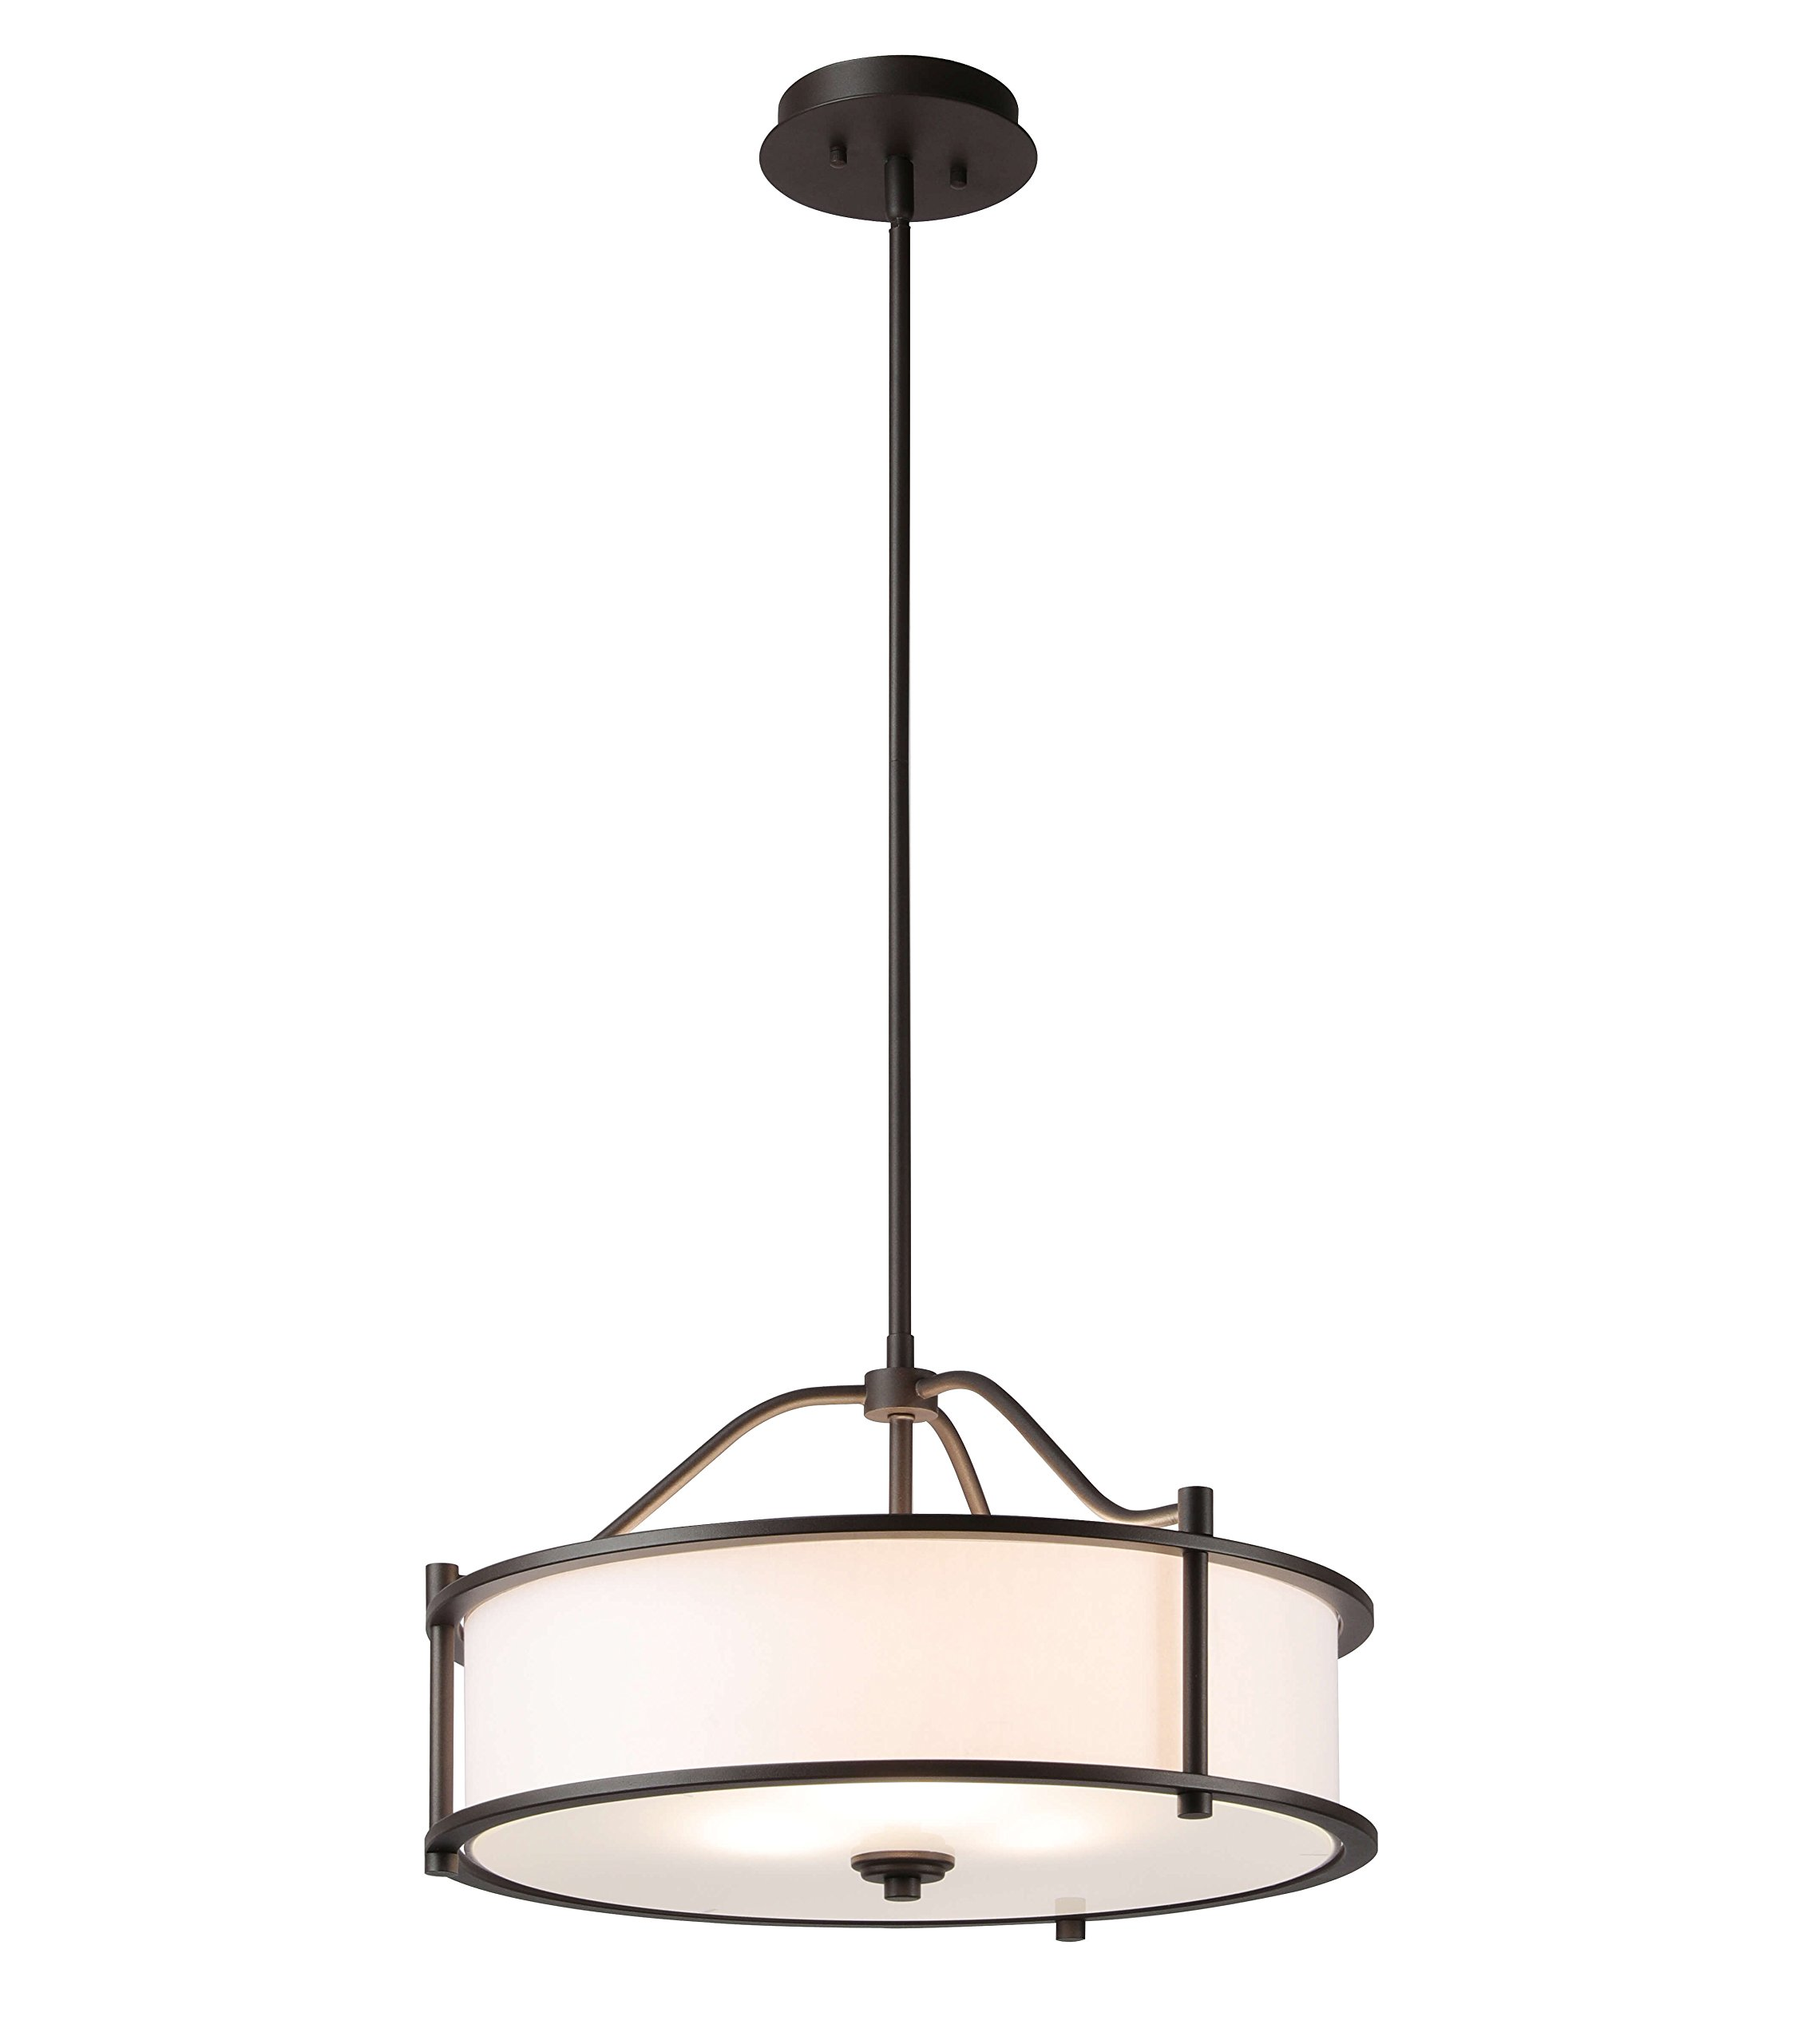 Pendant Lighting 18 inch 3 Light Drum Pendant Light with Fabric Shade and Glass Diffuser in Dark Bronze, Classic Convertible Drum Chandelier for Living & Dinning Room XiNBEi-Lighting XB-P1199-DB by XiNBEi Lighting